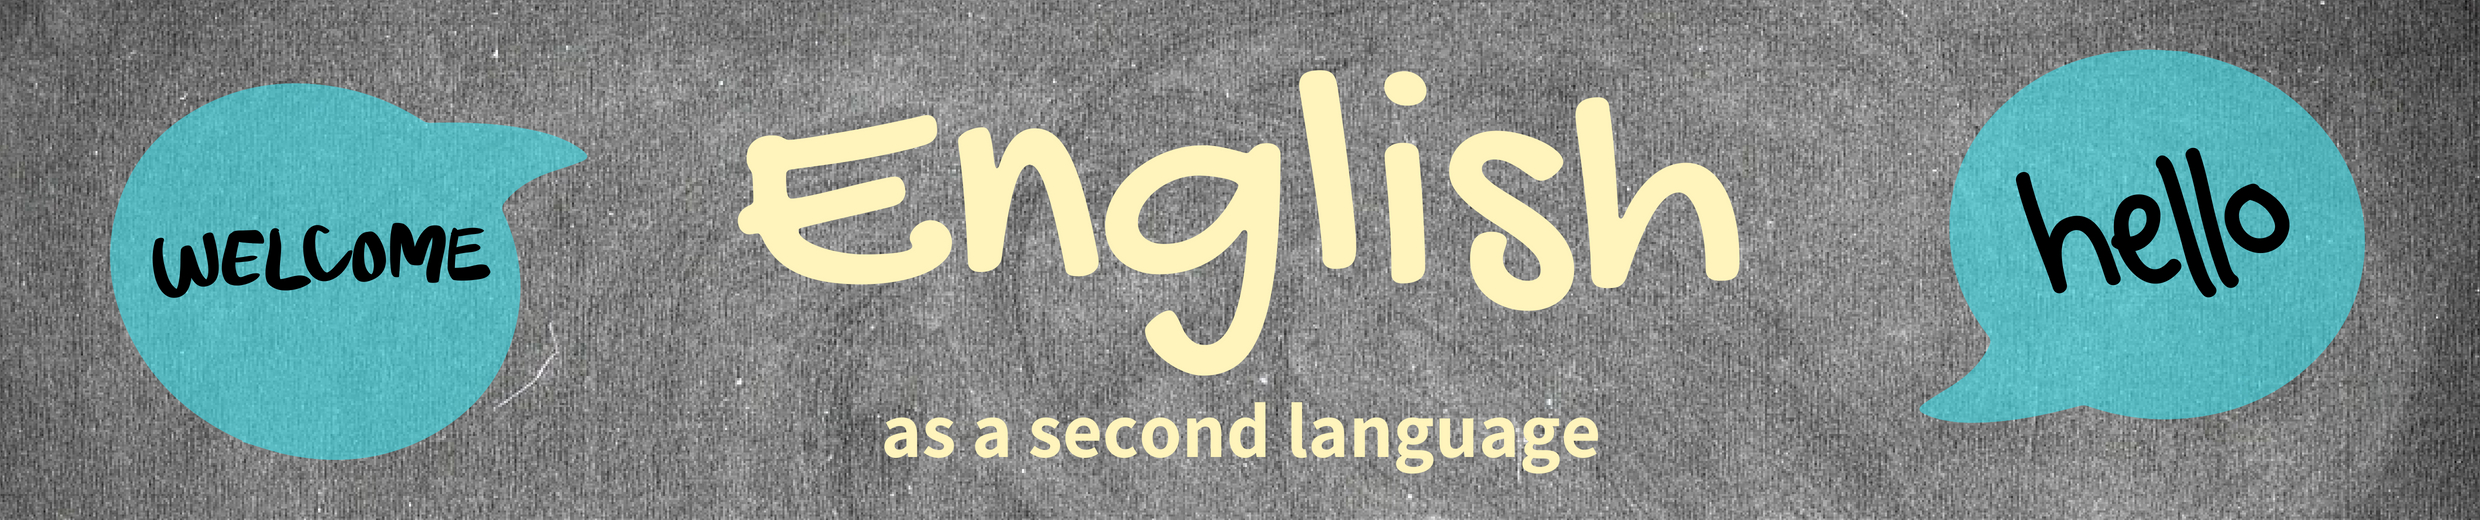 Banner that reads English as a second language. Surrounding speech bubbles say hello and welcome.